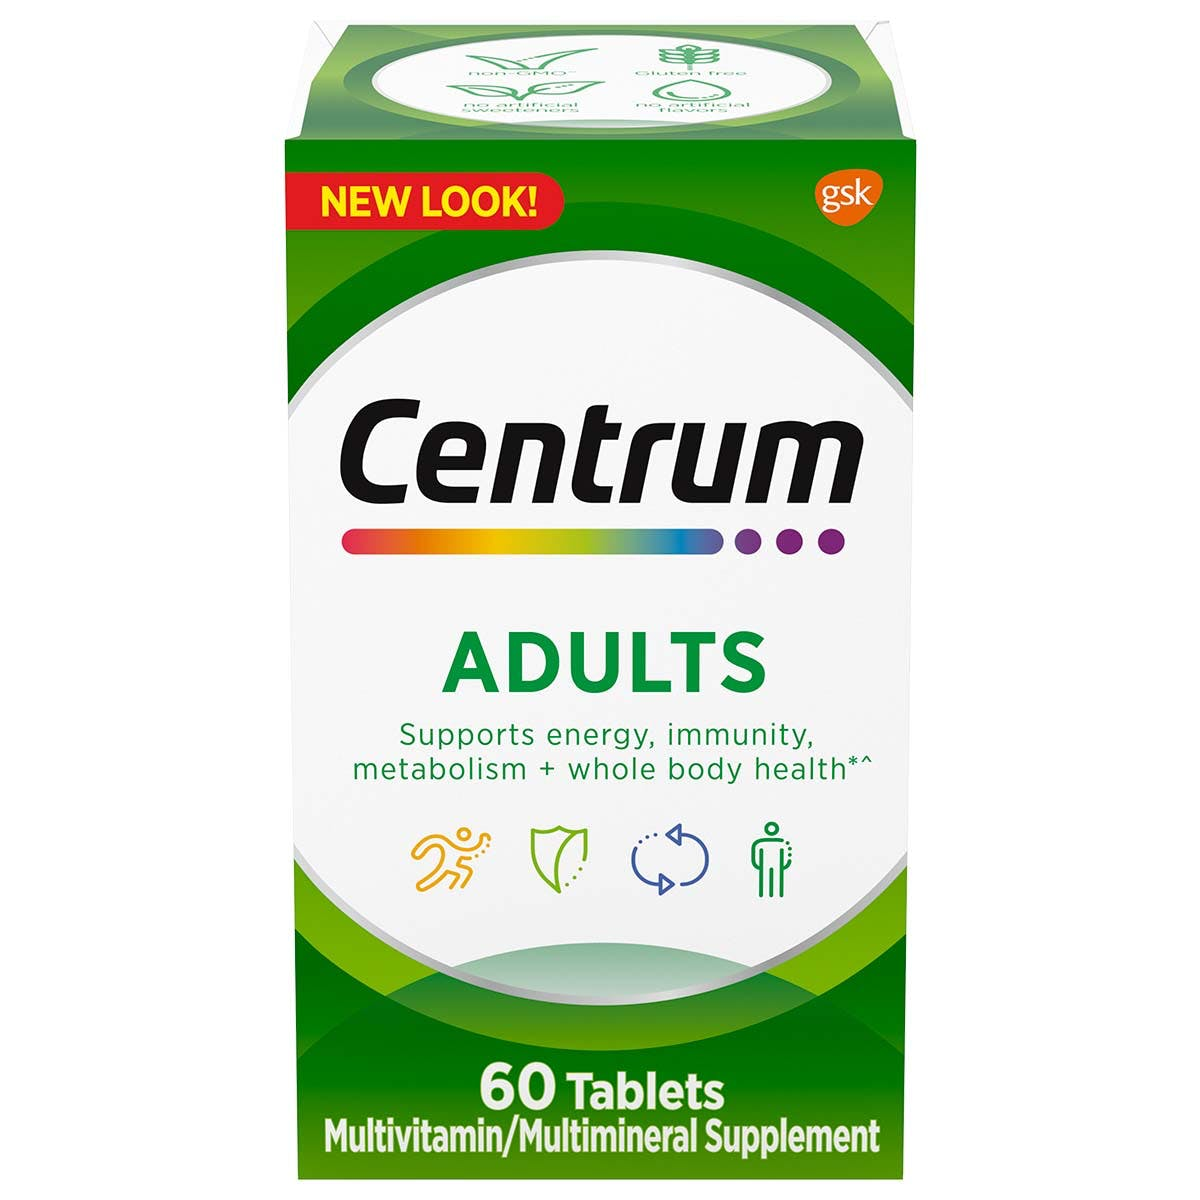 Box of Centrum Adult multivitamins